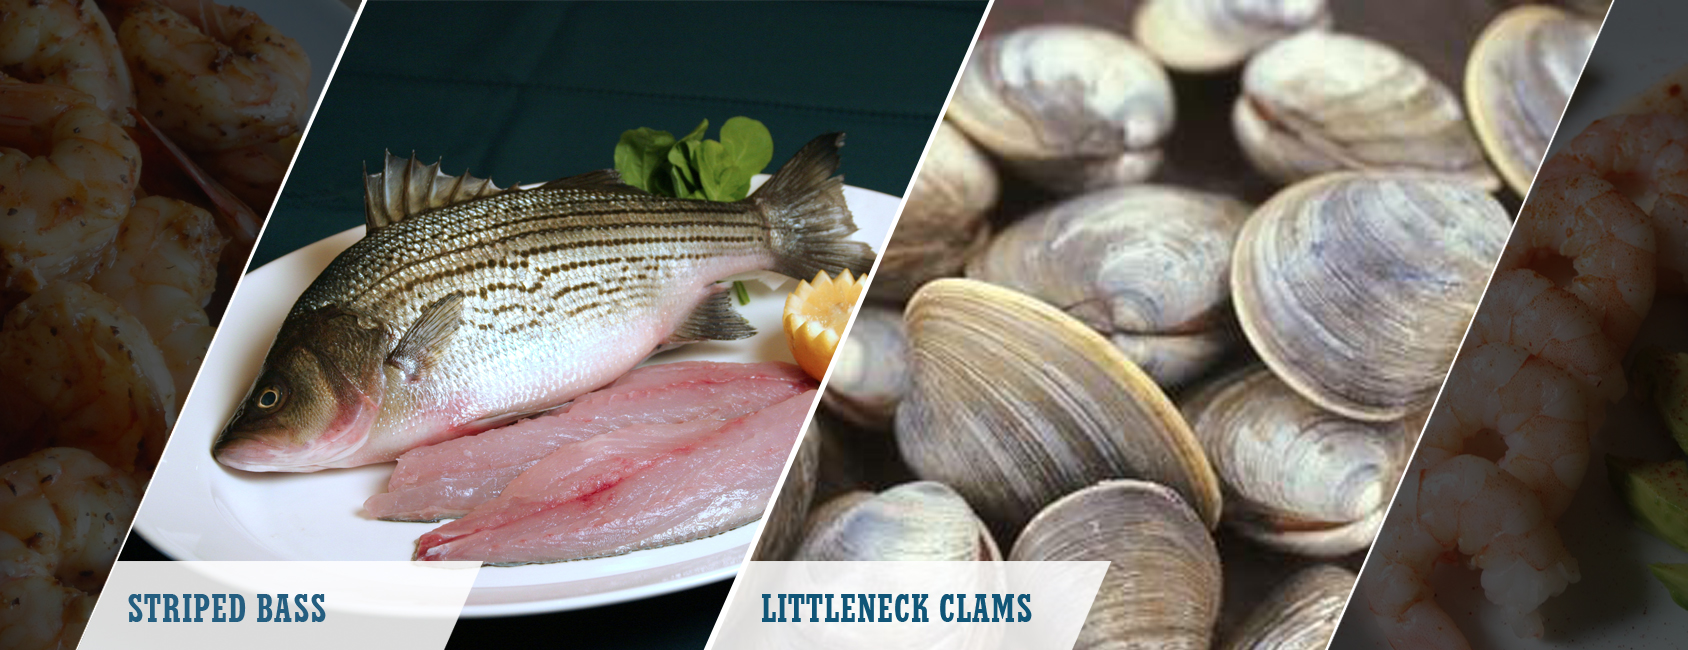 Distributor of Seafood, Beef, Poultry | Prawnco